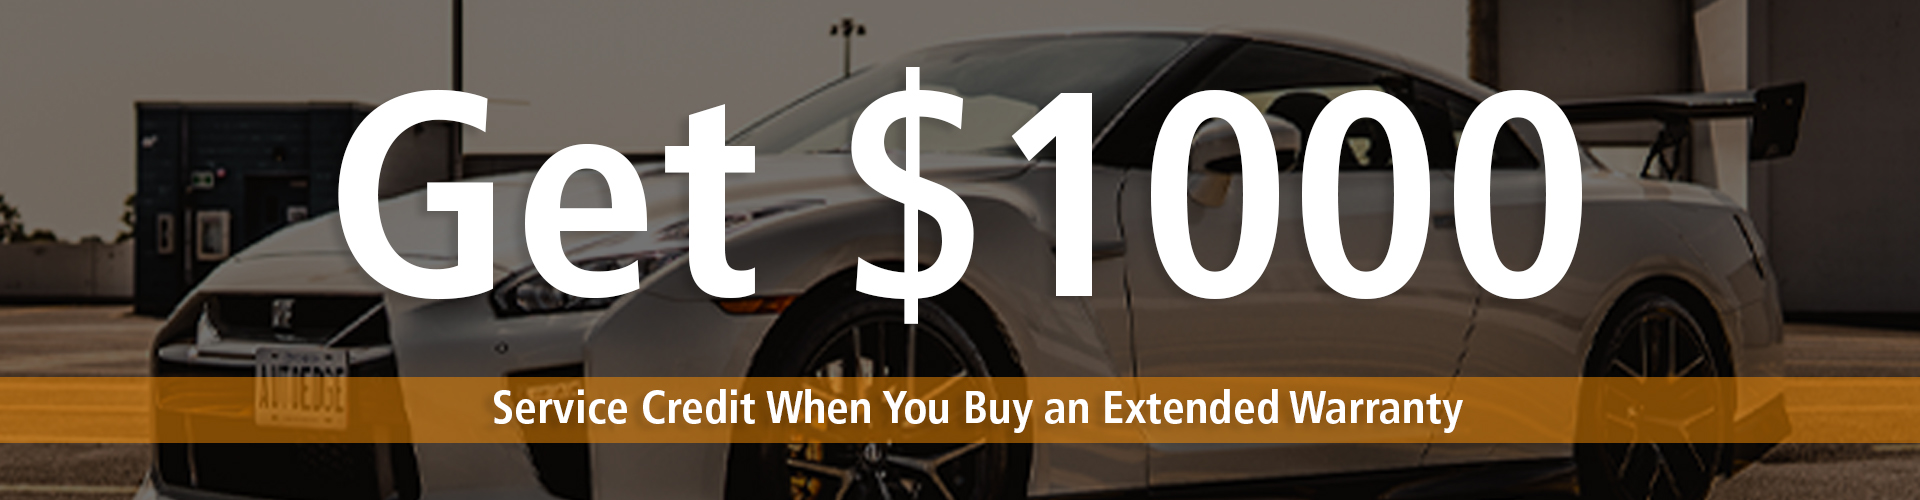 Get $1000 AutoEdge Service Credit when you buy an Extended Warranty on any AutoEdge Vehicle. We sell & service all makes & models.